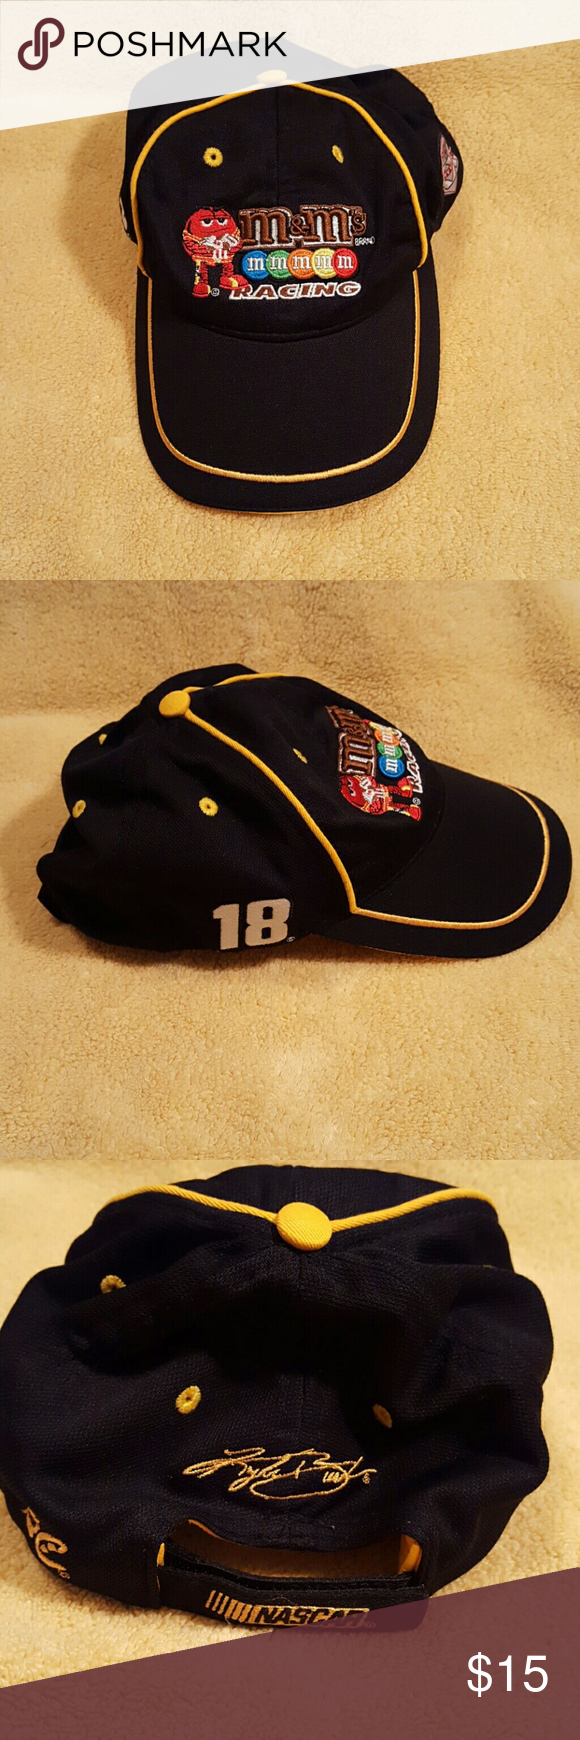 95d296bb Nascar/M&M's Baseball Cap Unisex Nascar/M&M's Baseball Cap from Chase  Authentics. One size fits most. Gently worn and in great condition.